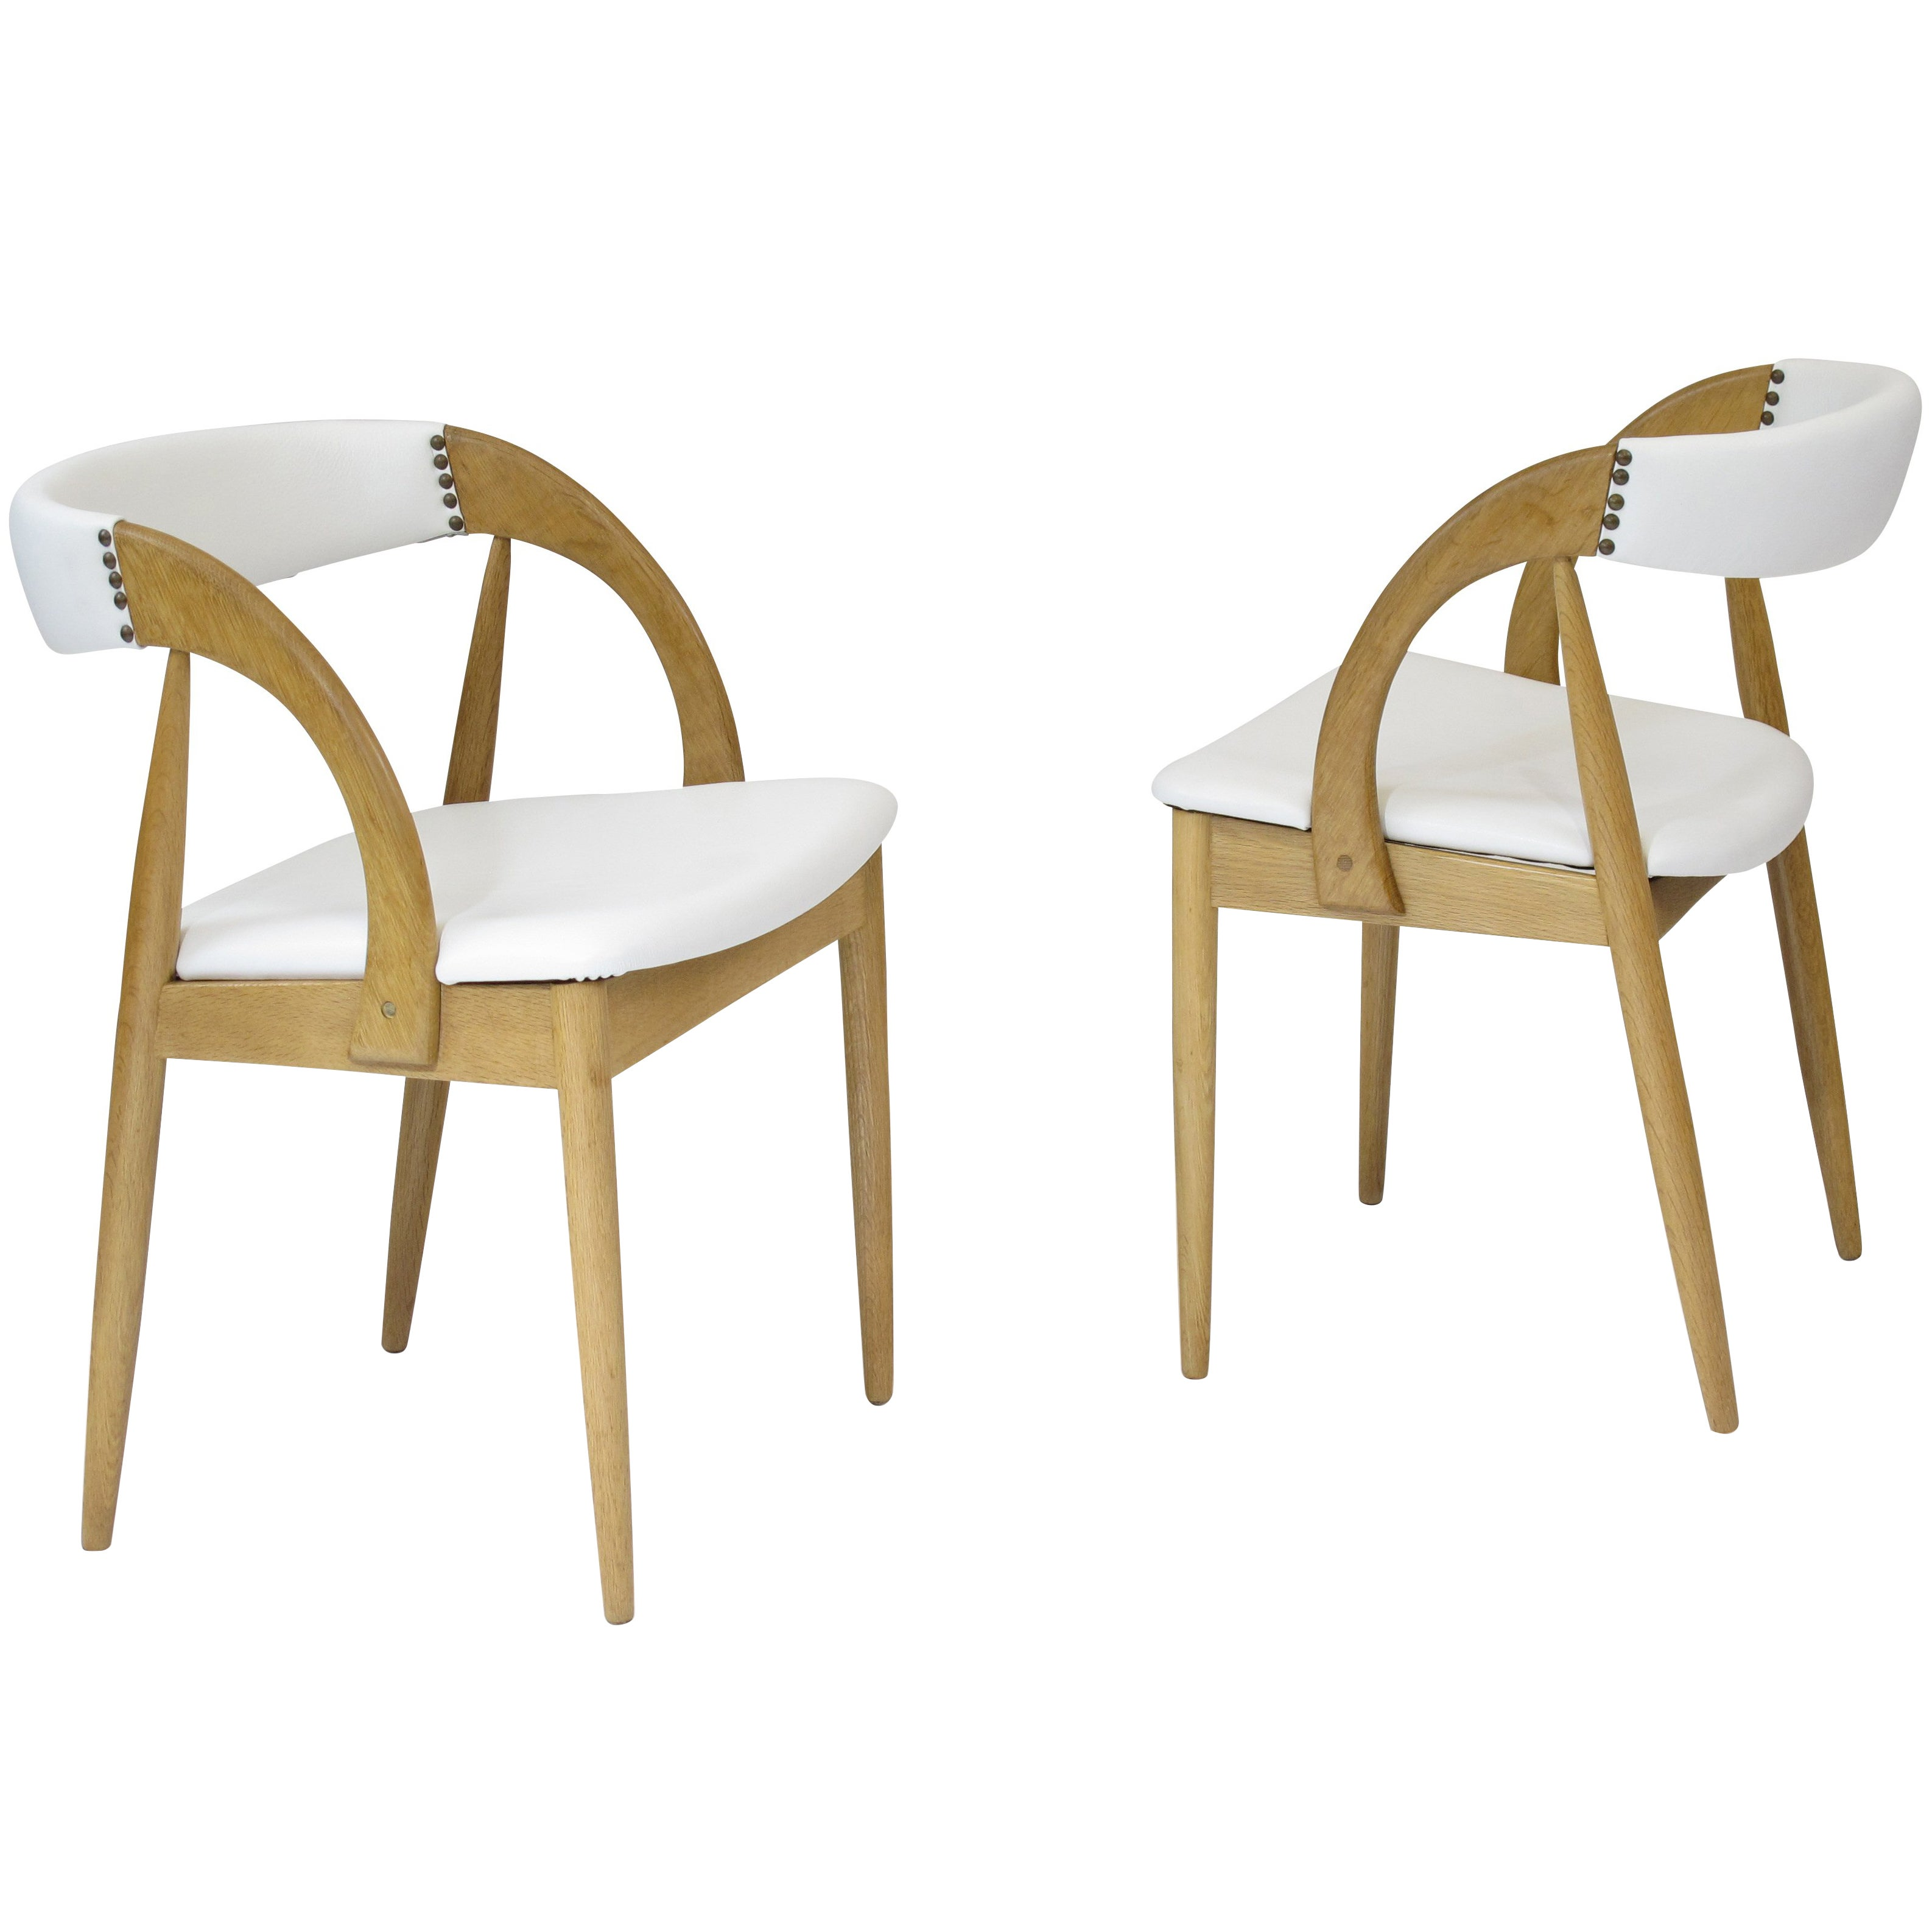 oak and white dining chairs desk chair gold coast pair of danish in leather at 1stdibs